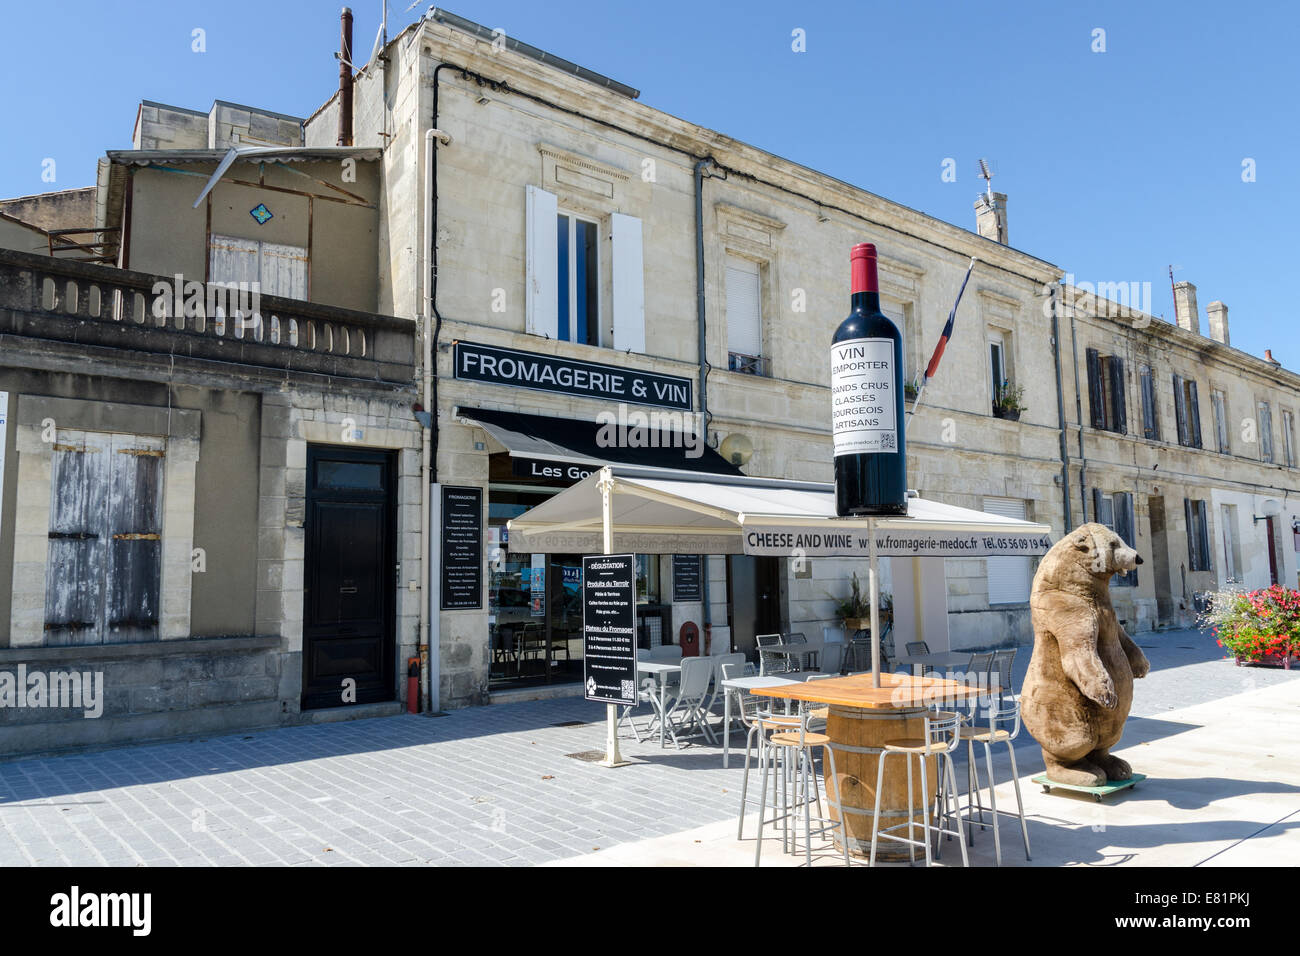 Fromagerie et Vin, cheese and wine shop in the Medoc town of Pauillac - Stock Image